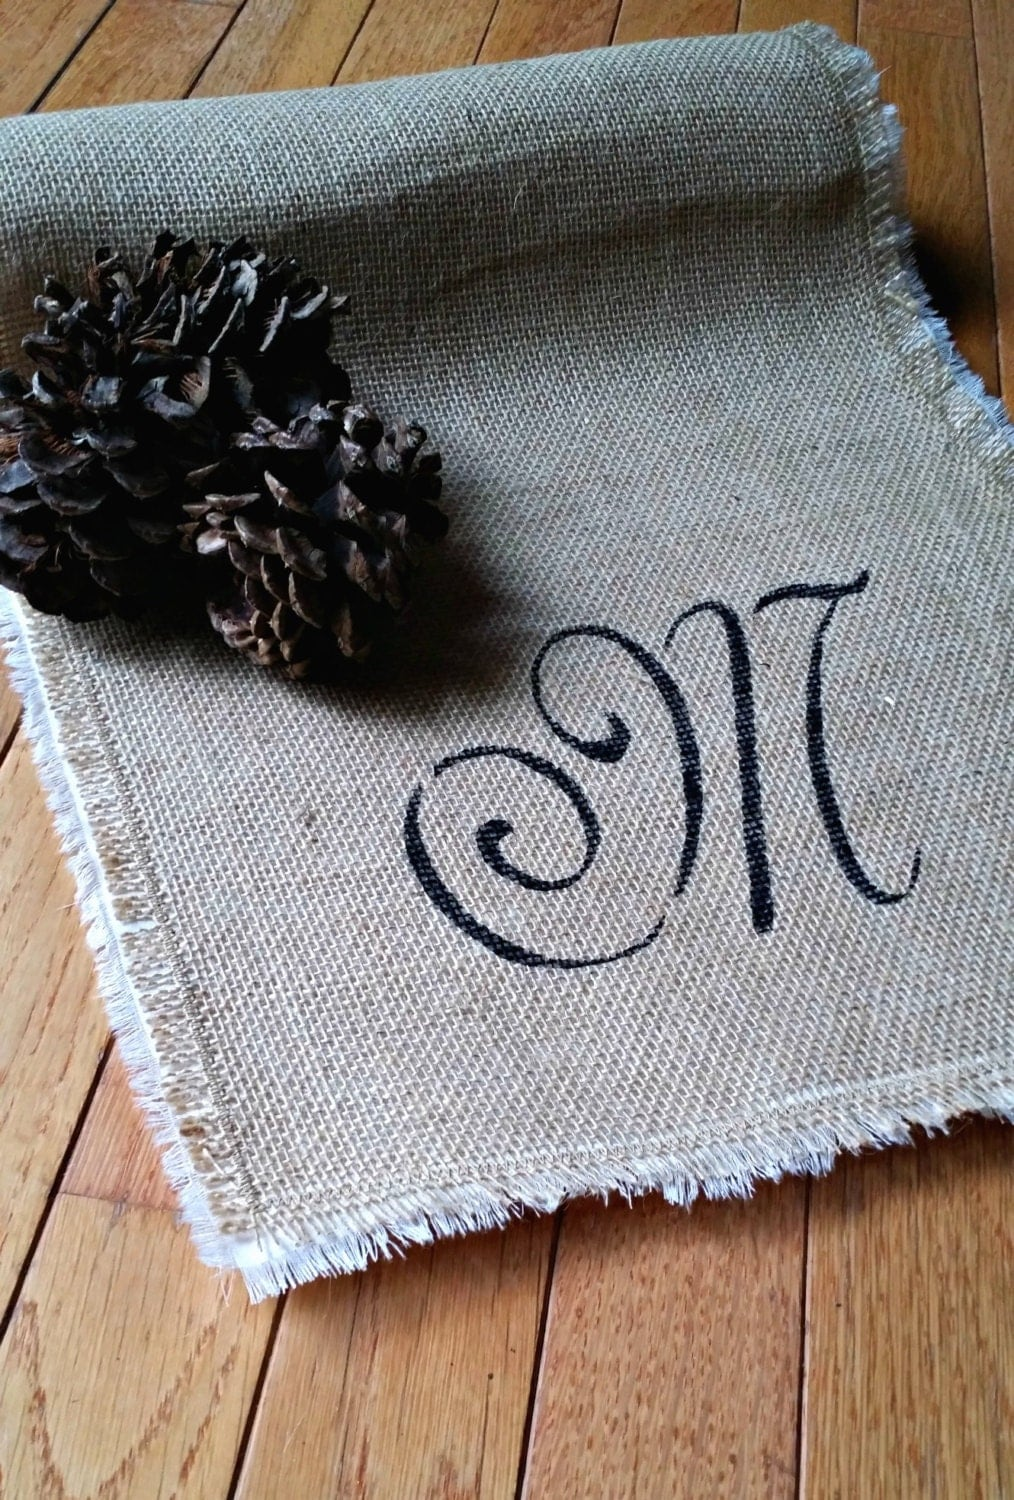 Monogrammed Burlap Table Runner Rustic Table Decor Rustic